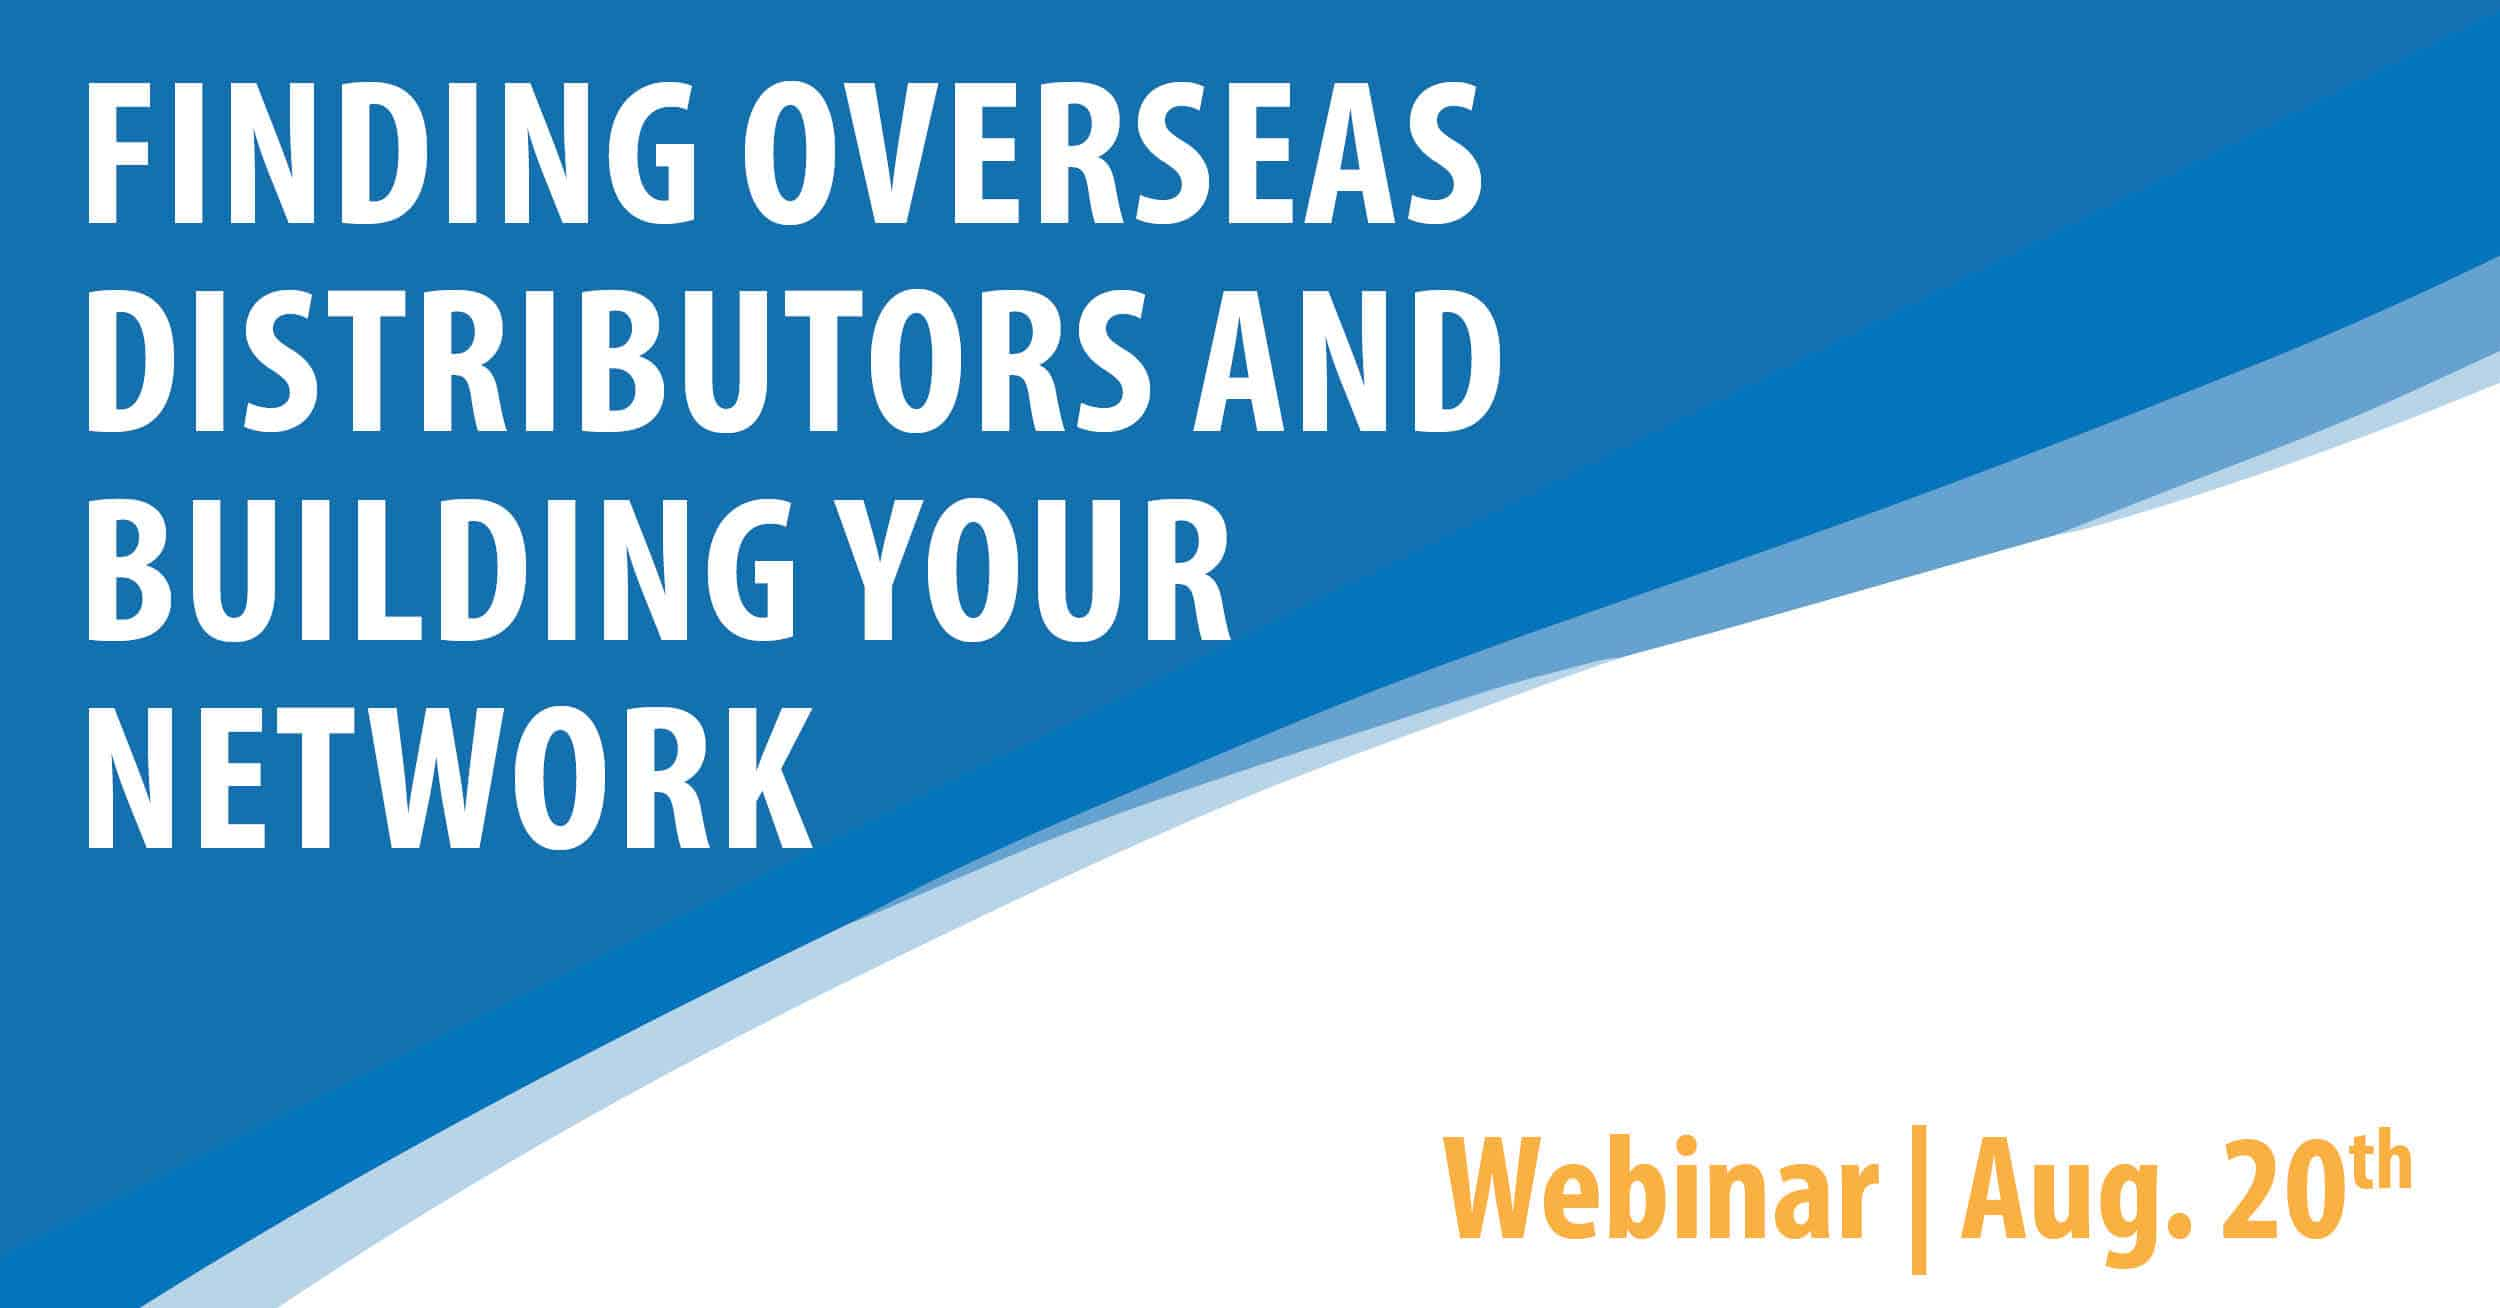 Finding Overseas Distributors and Building Your Network